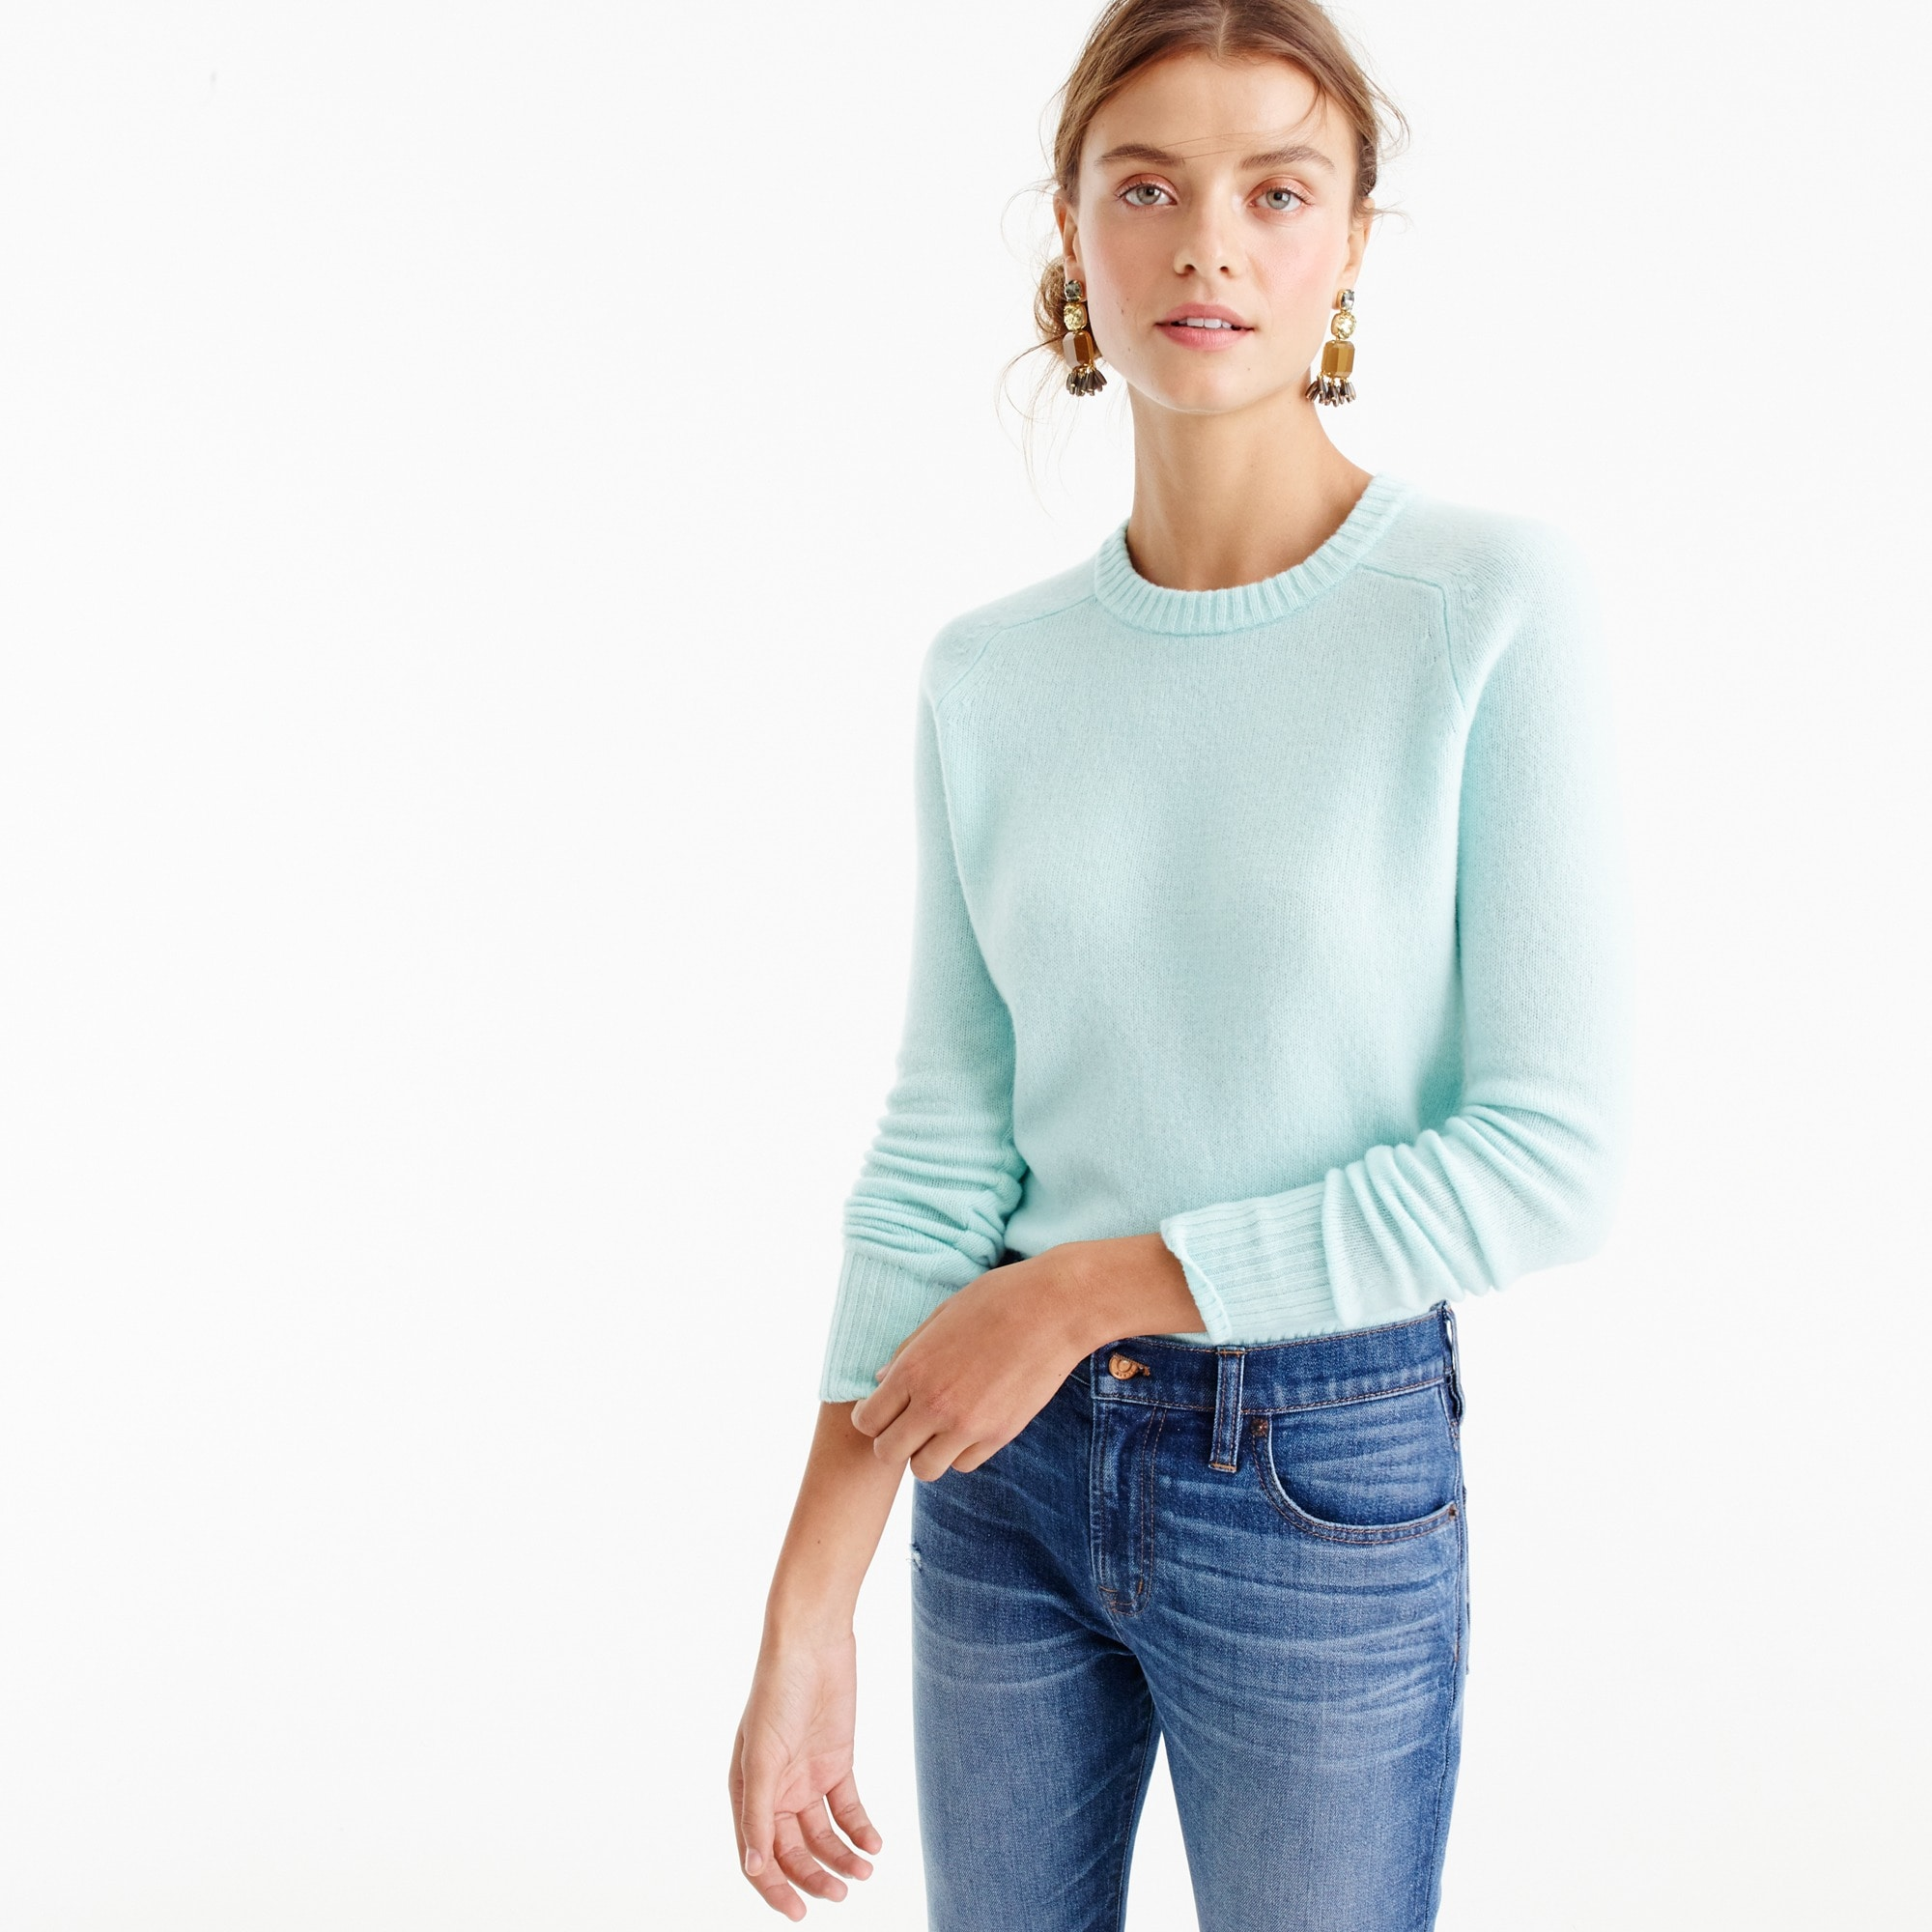 holly sweater : women's sweaters